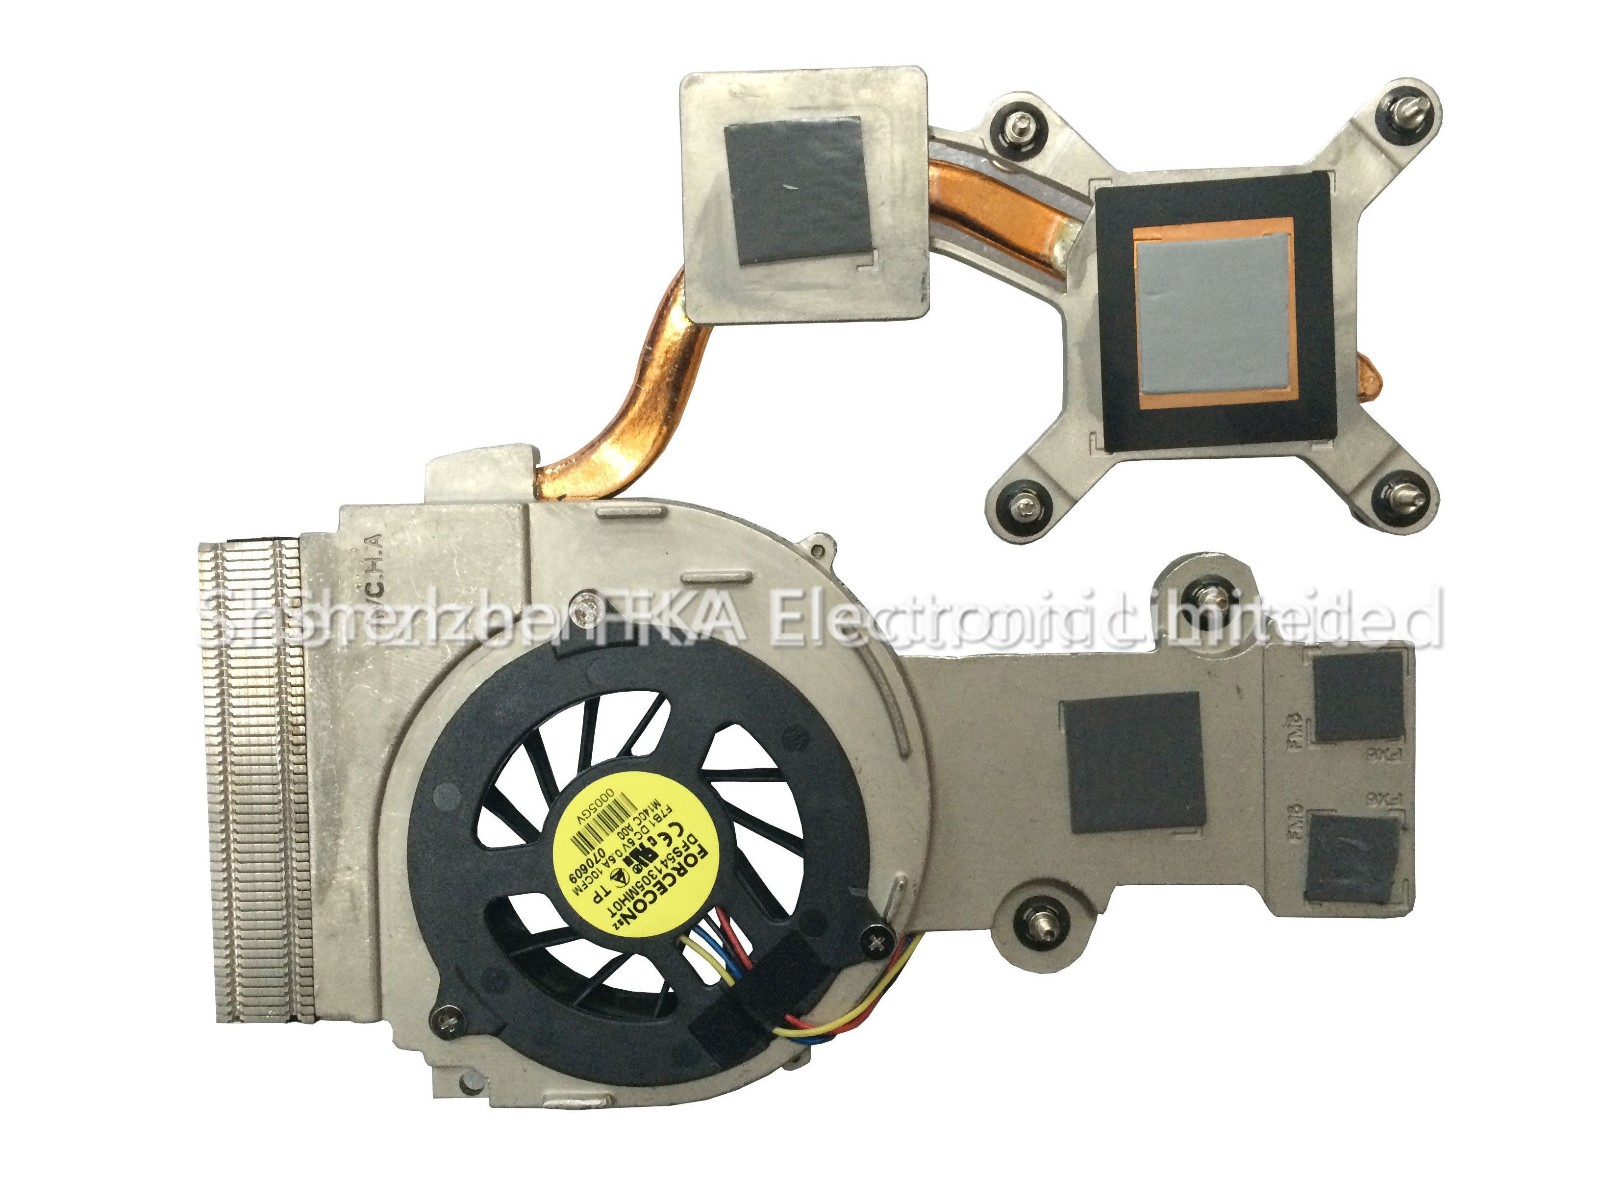 Dell Studio 15 1535 CPU Cooling Fan and Heatsink M240C 0M240C